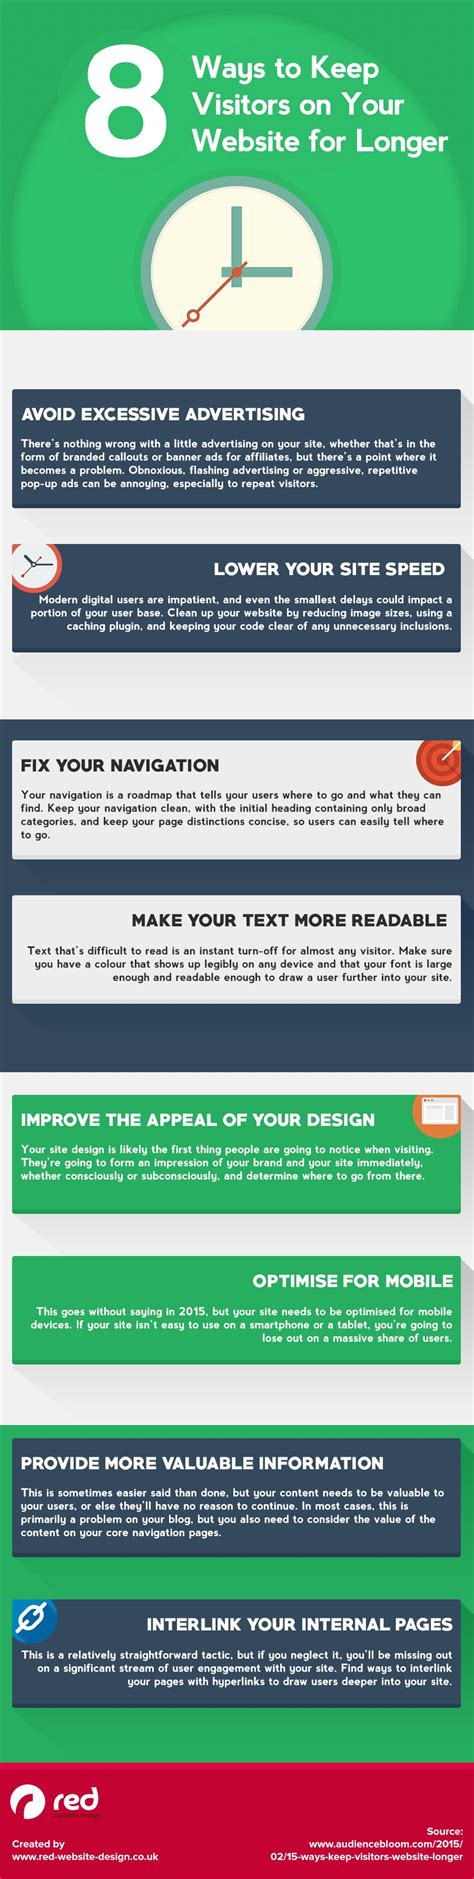 4 Easy Ways To Keep Visitors On Your Site 8 Really Easy Ways To Keep Visitors On Your Website